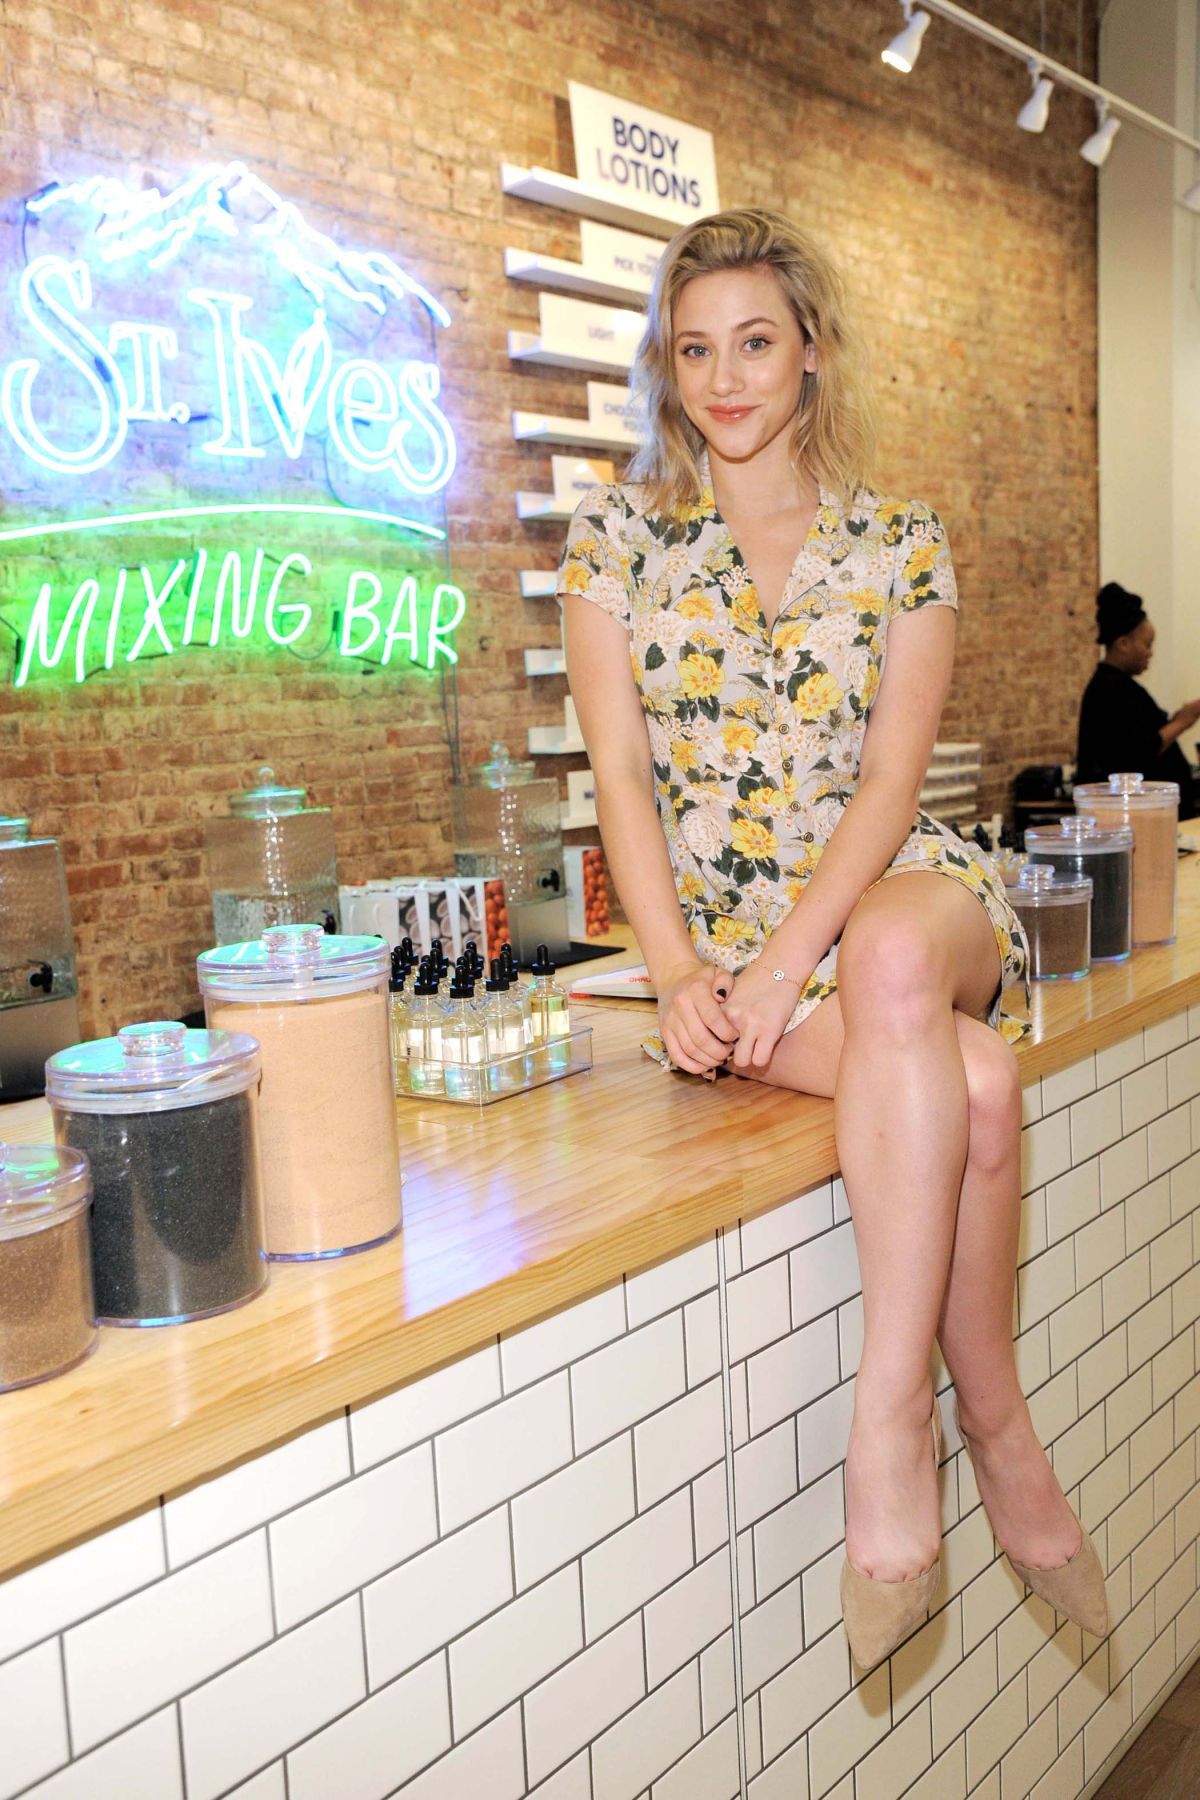 LILI REINHART at a Photo Opp at Mixing Bar in New York 08/15/2017